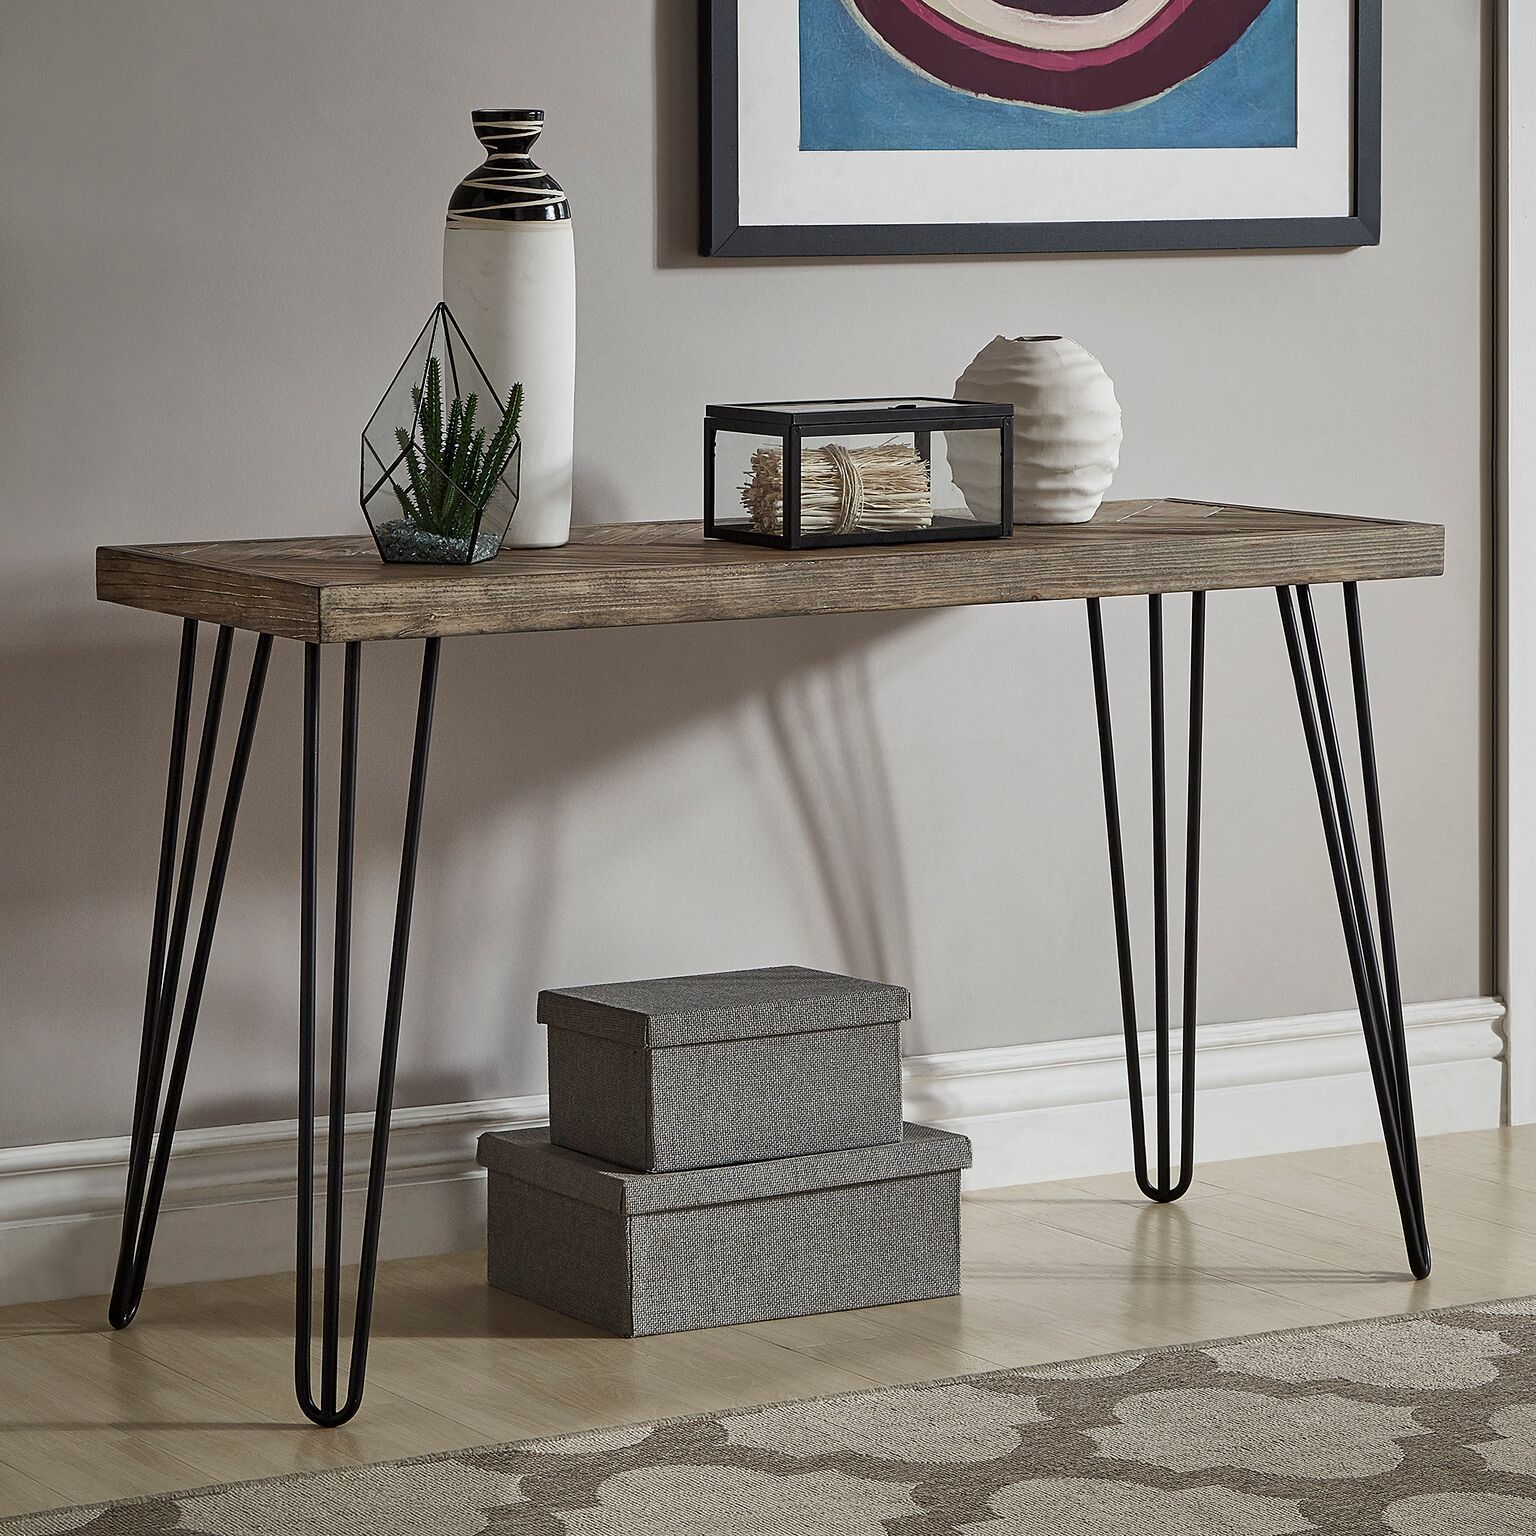 Krew Mid Century Modern Light Wood And Metal Console Entryway Table By Inspire Q